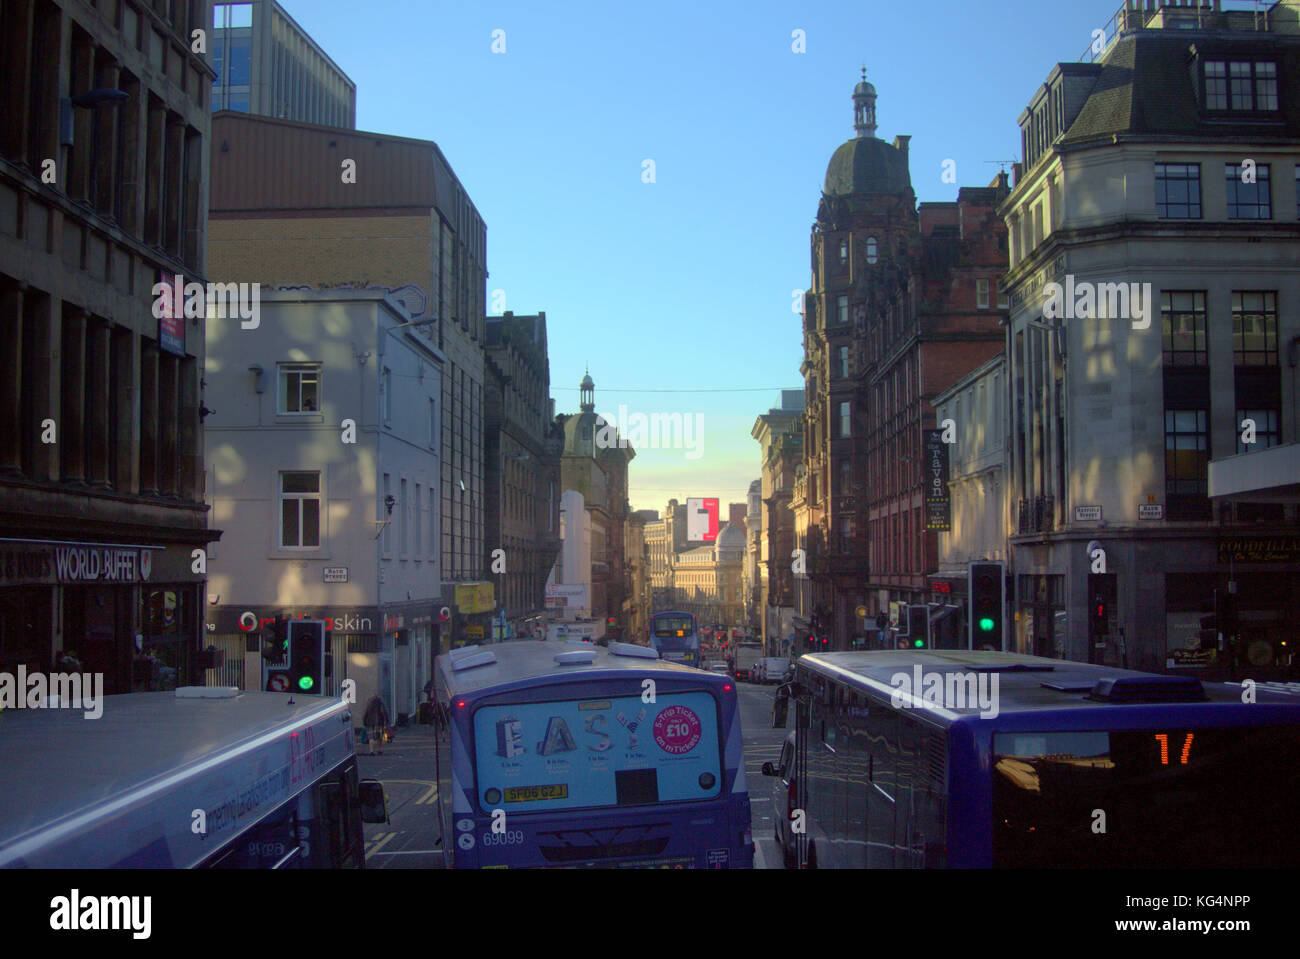 union street and renfield street  glasgow heavy bus traffic congestion rush hour bus pulling out - Stock Image